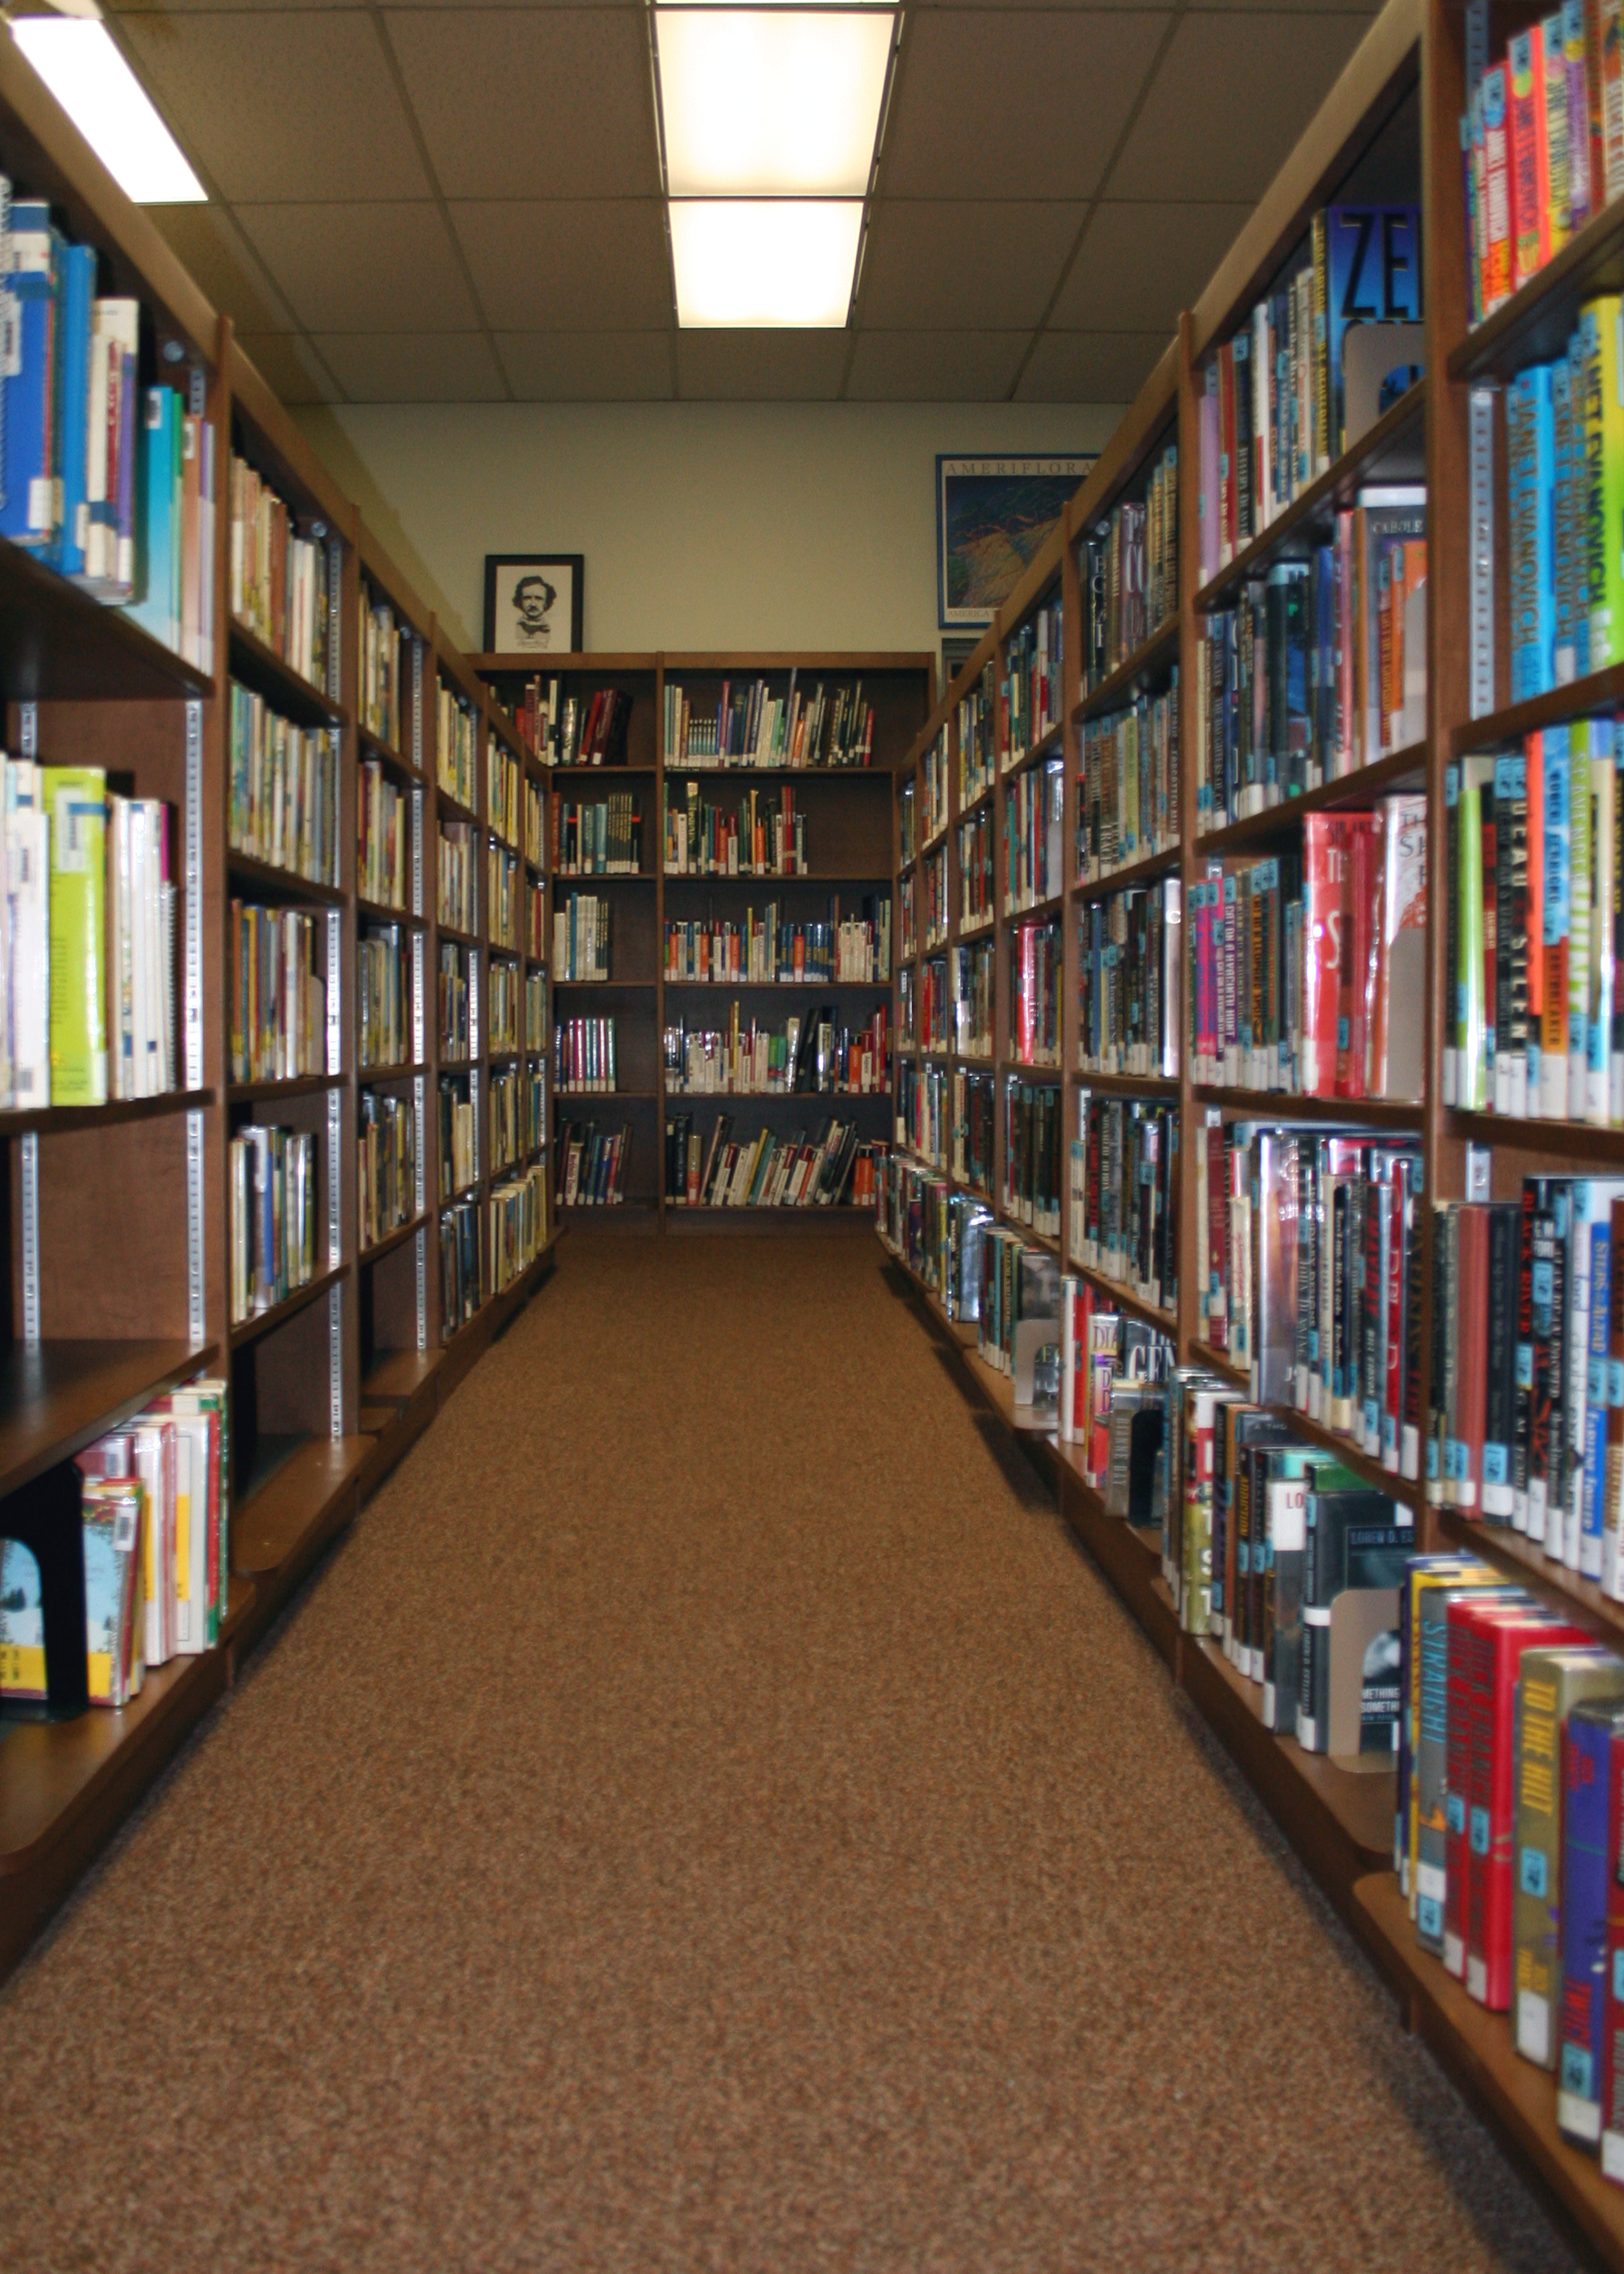 Photo Looking Down A Row Of Shelves In A Library